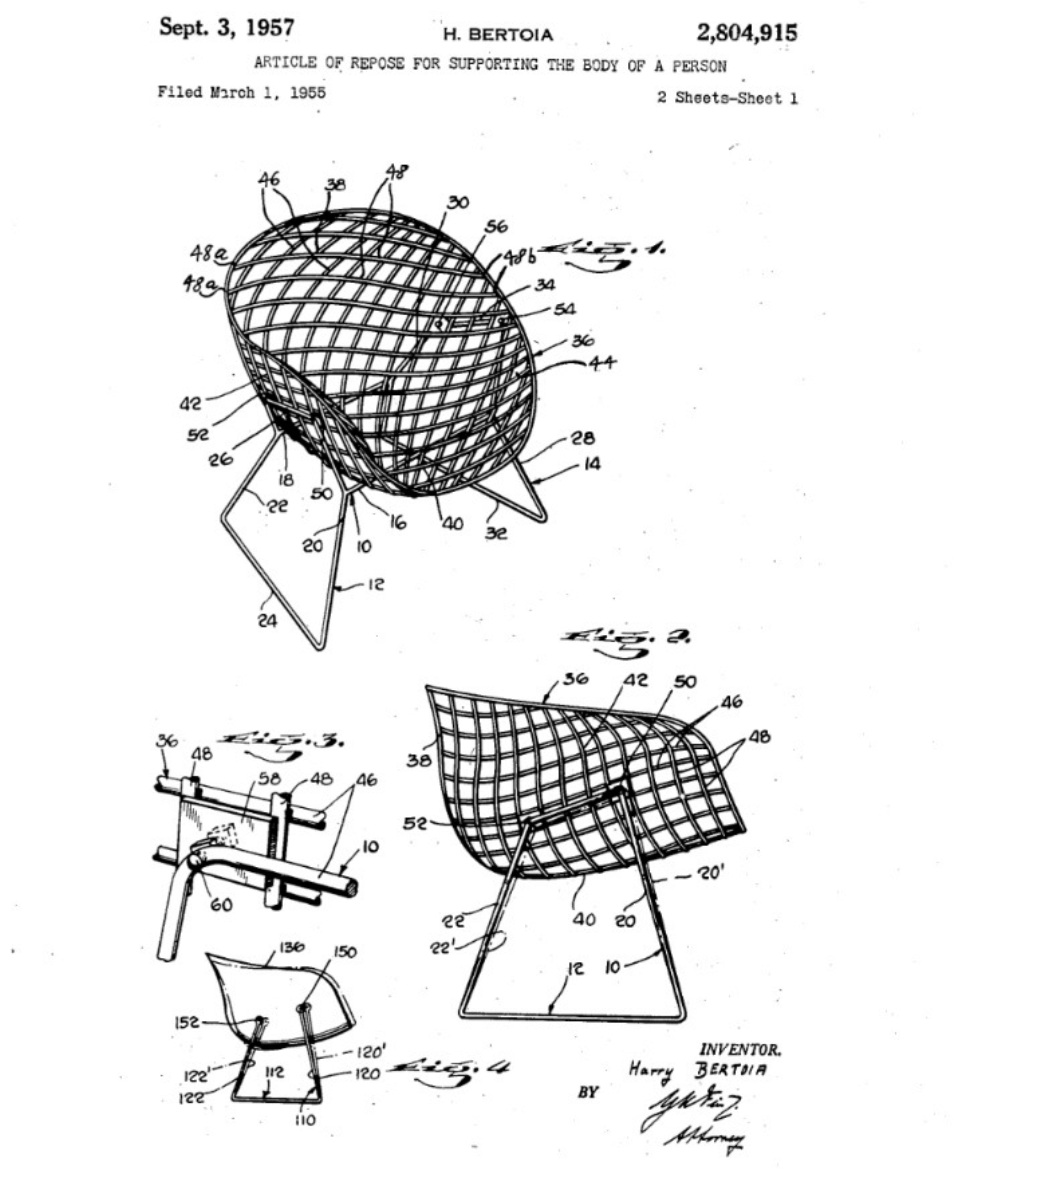 bertoia chair patent